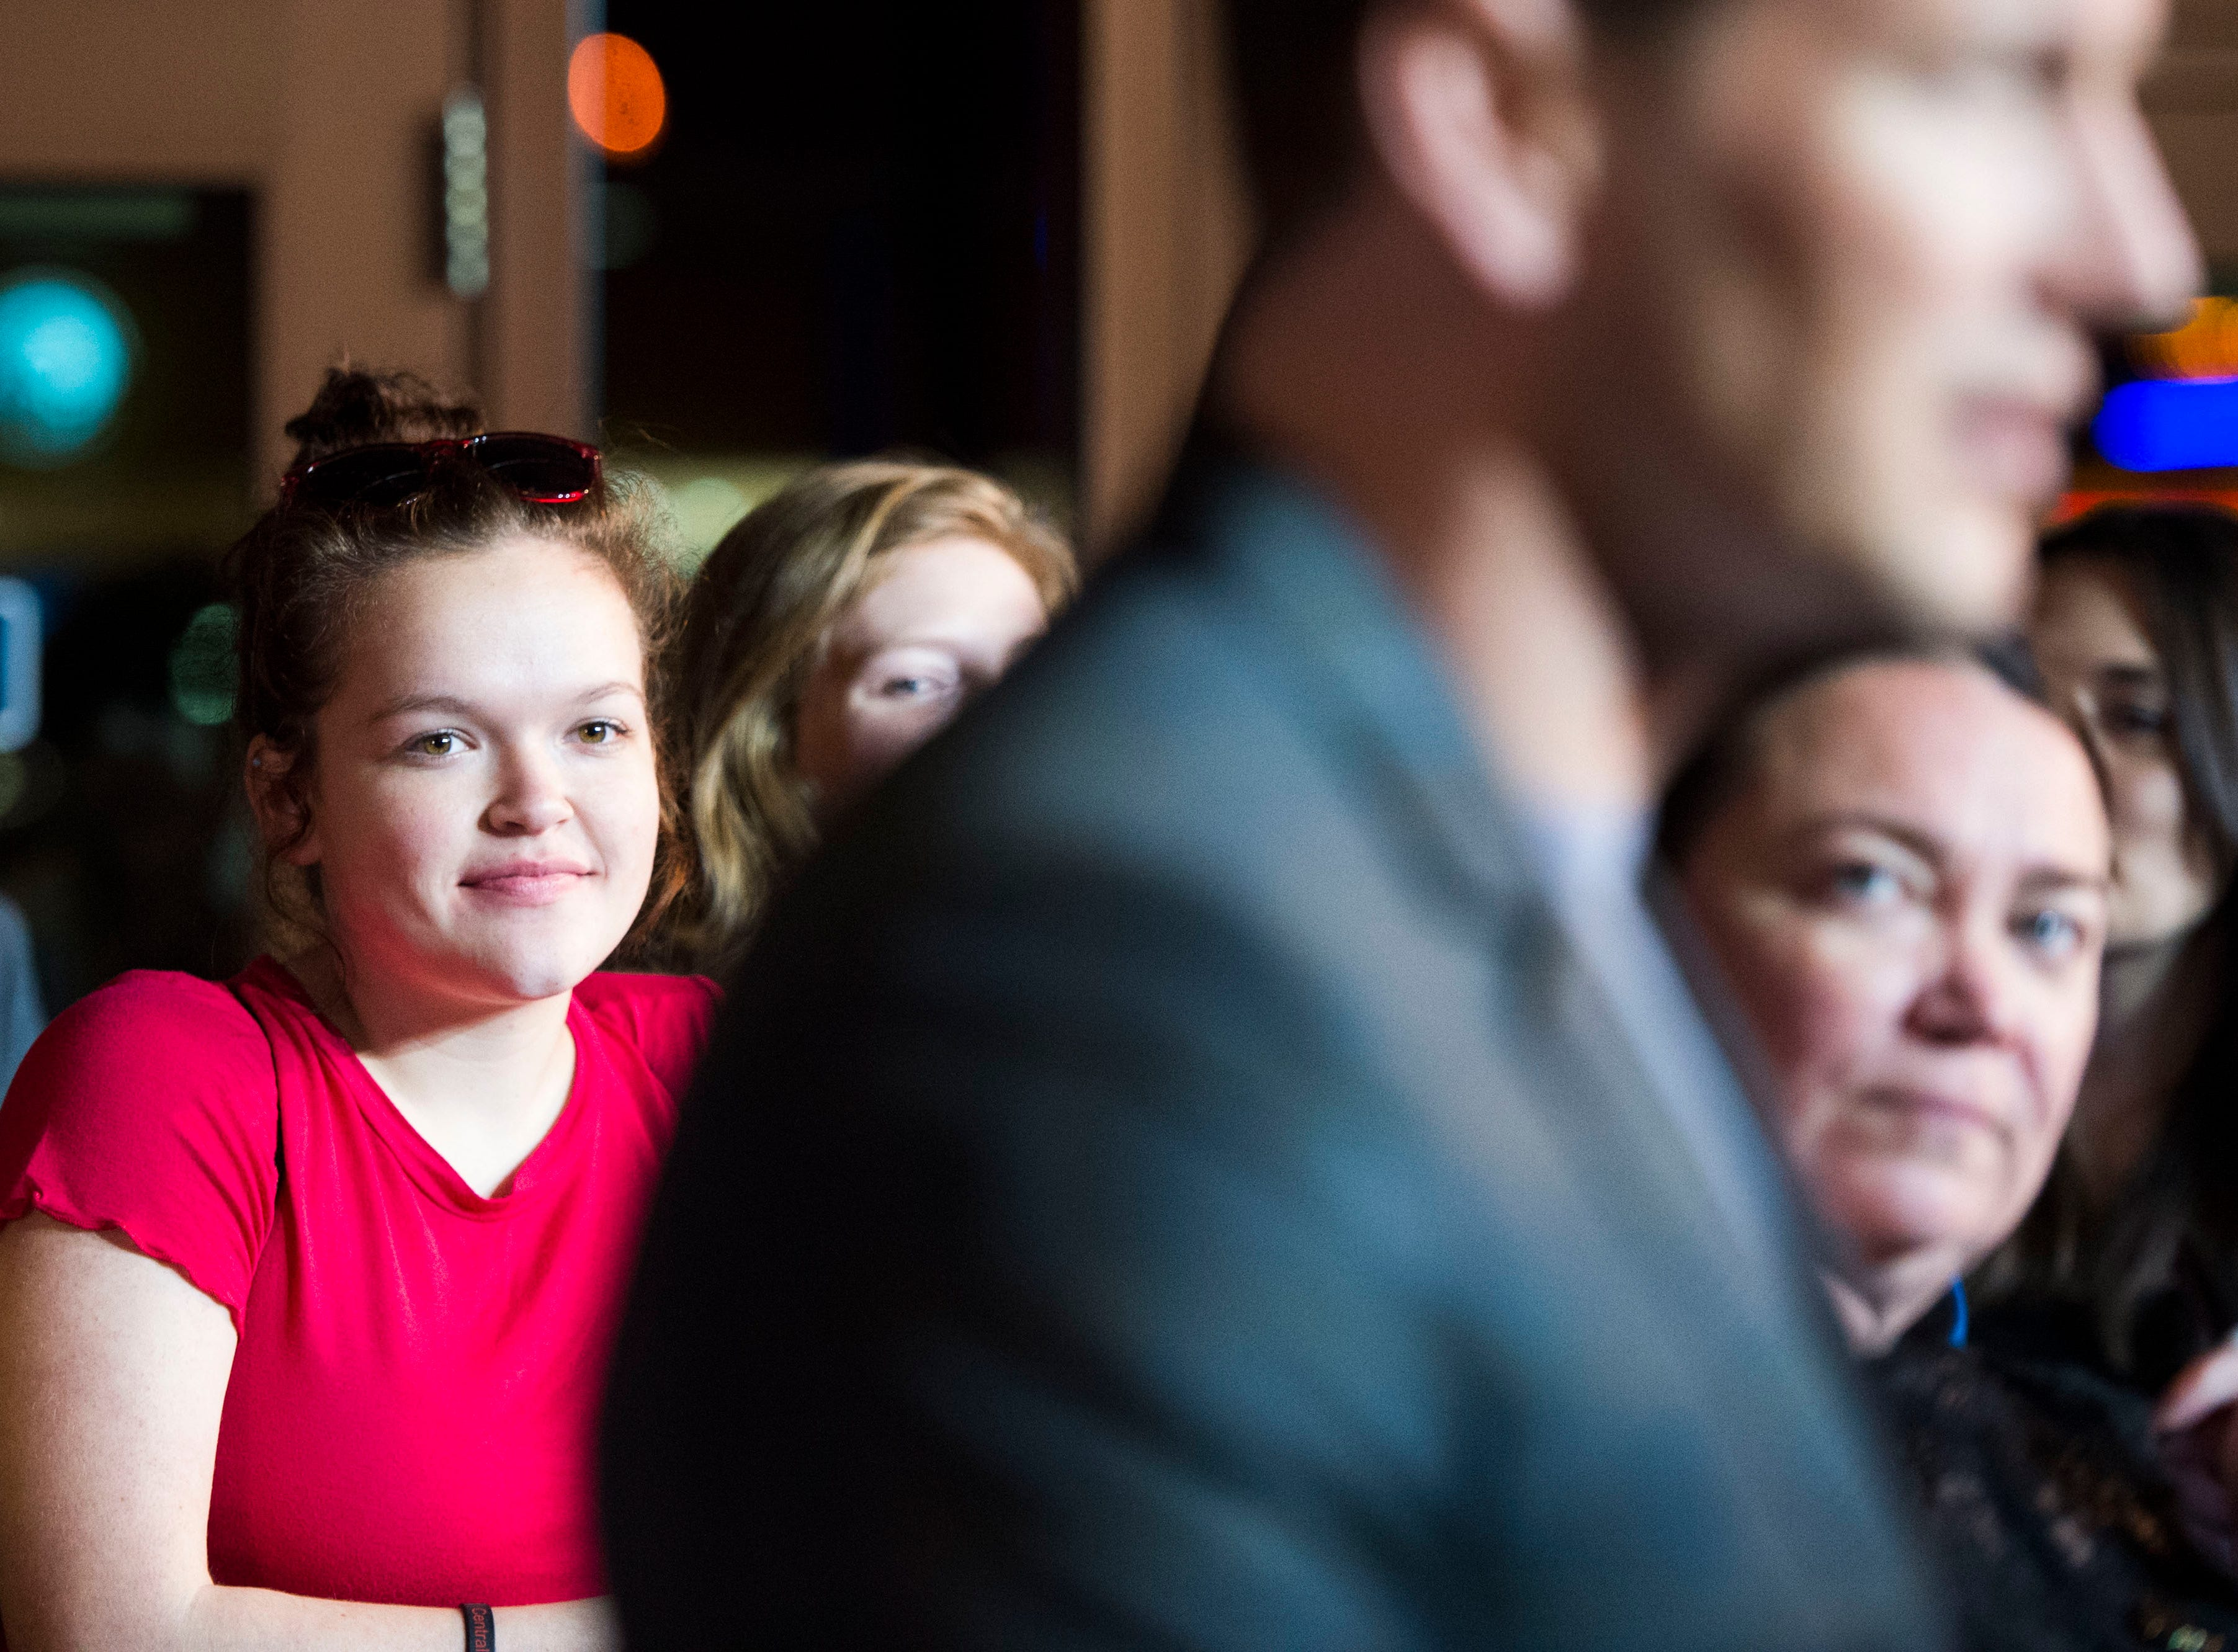 """Attendees watch as """"Aquaman"""" star Patrick Wilson speaks to the media at Regal's annual red carpet premiere for Variety at Regal Pinnacle Stadium 18, Thursday, Dec. 13, 2018."""